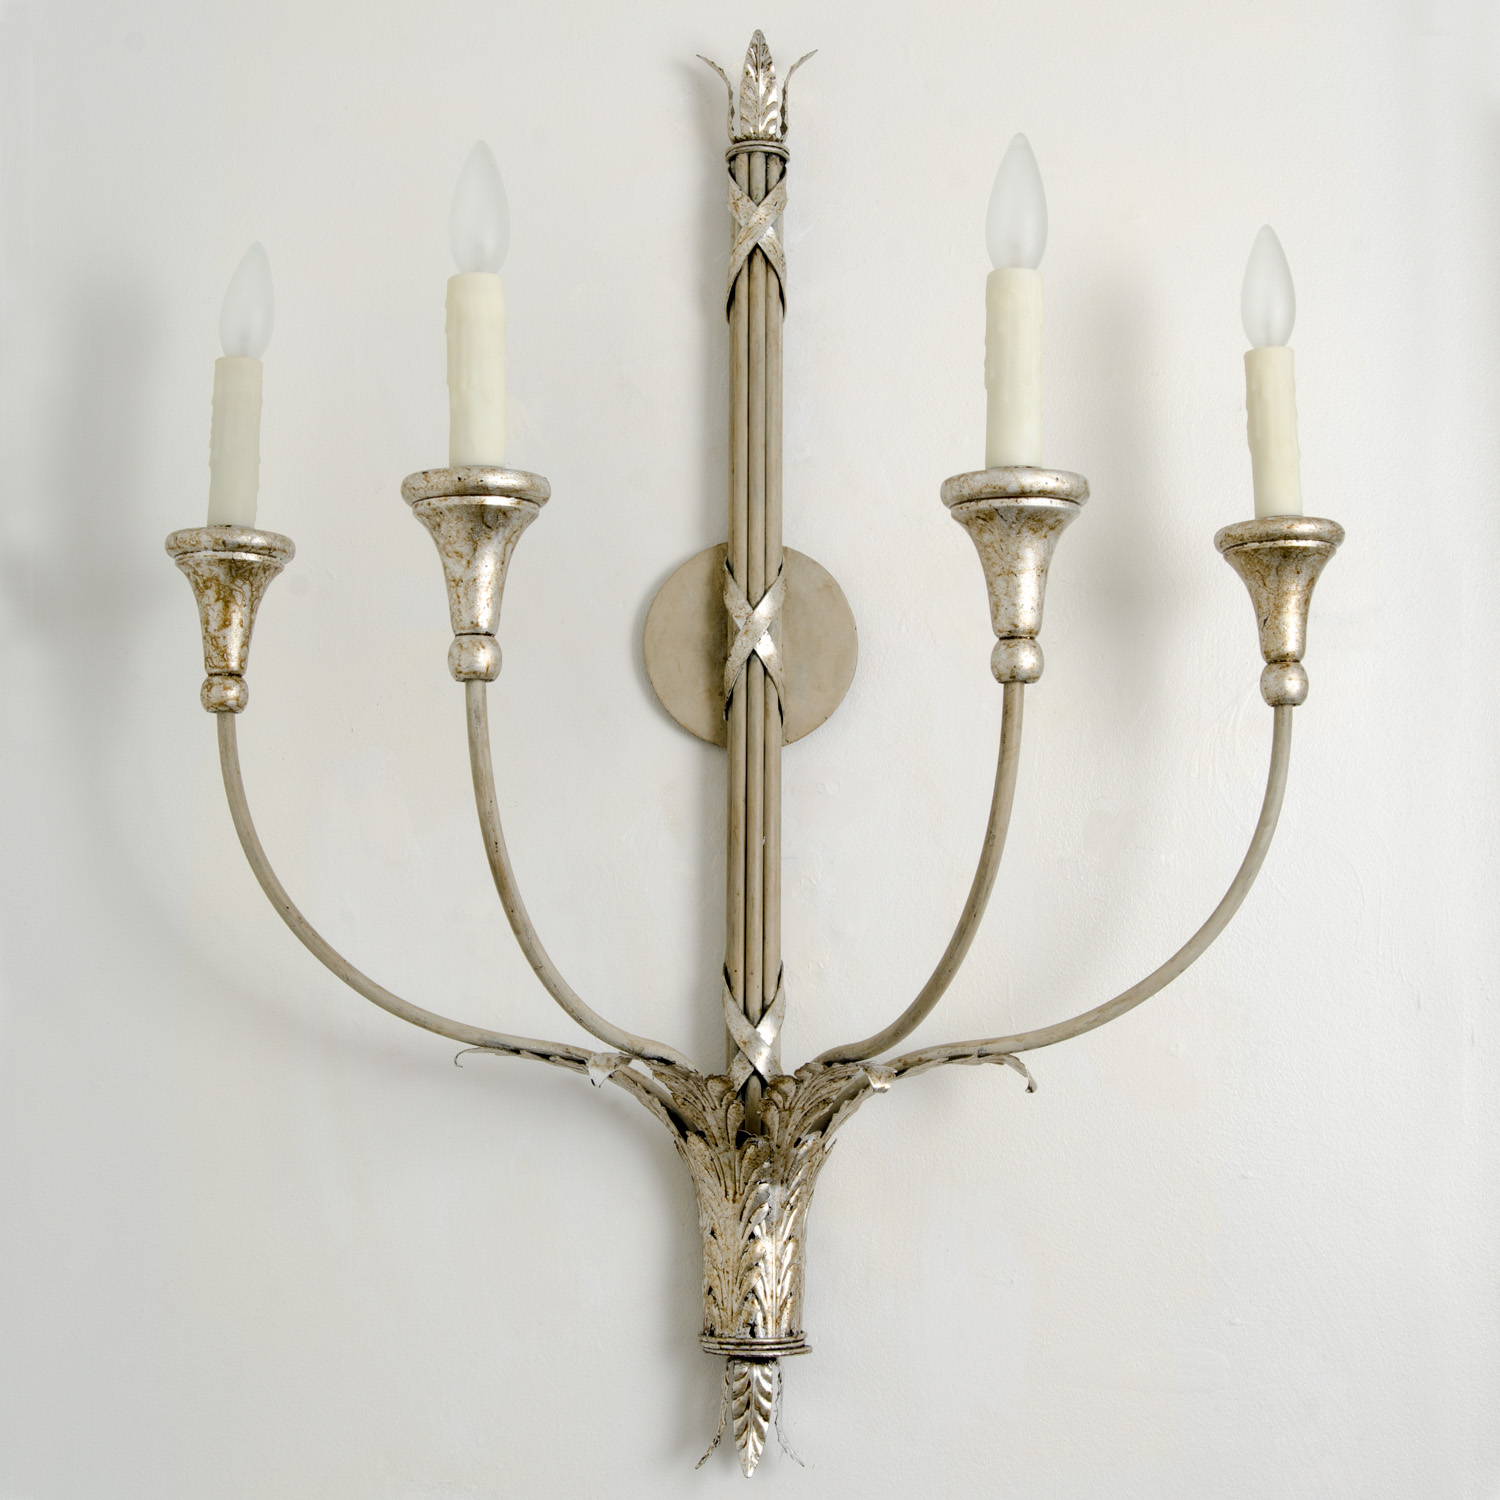 Pamela 4 Arm Sconce-29.jpg